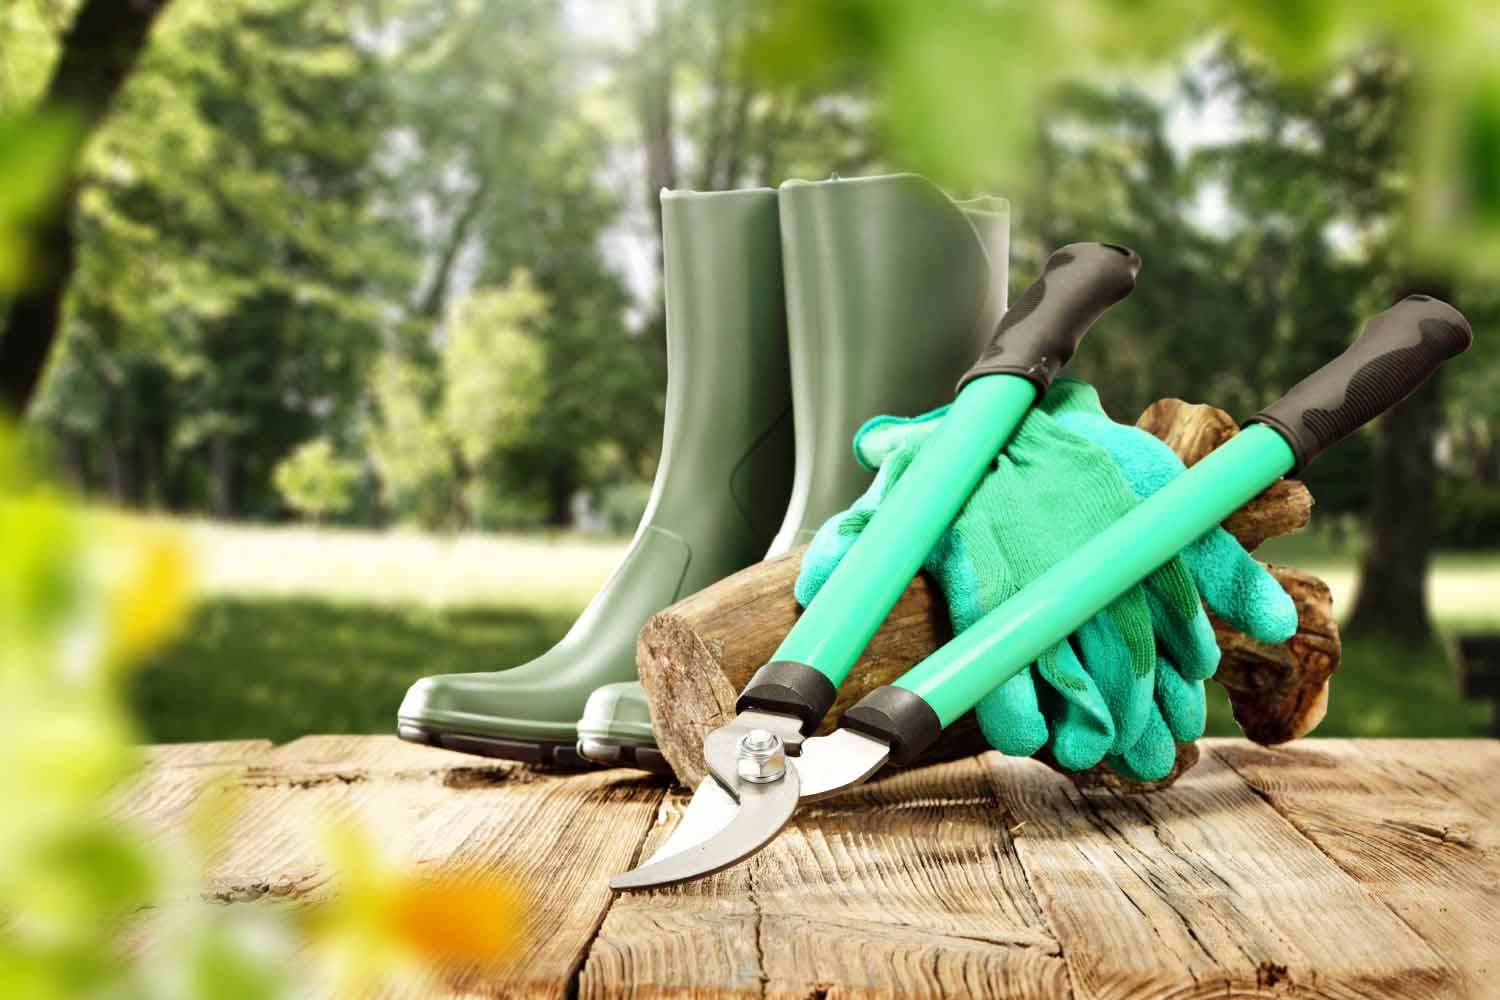 Garden tools for sale in portland farmington gardens for Gardening tools ireland